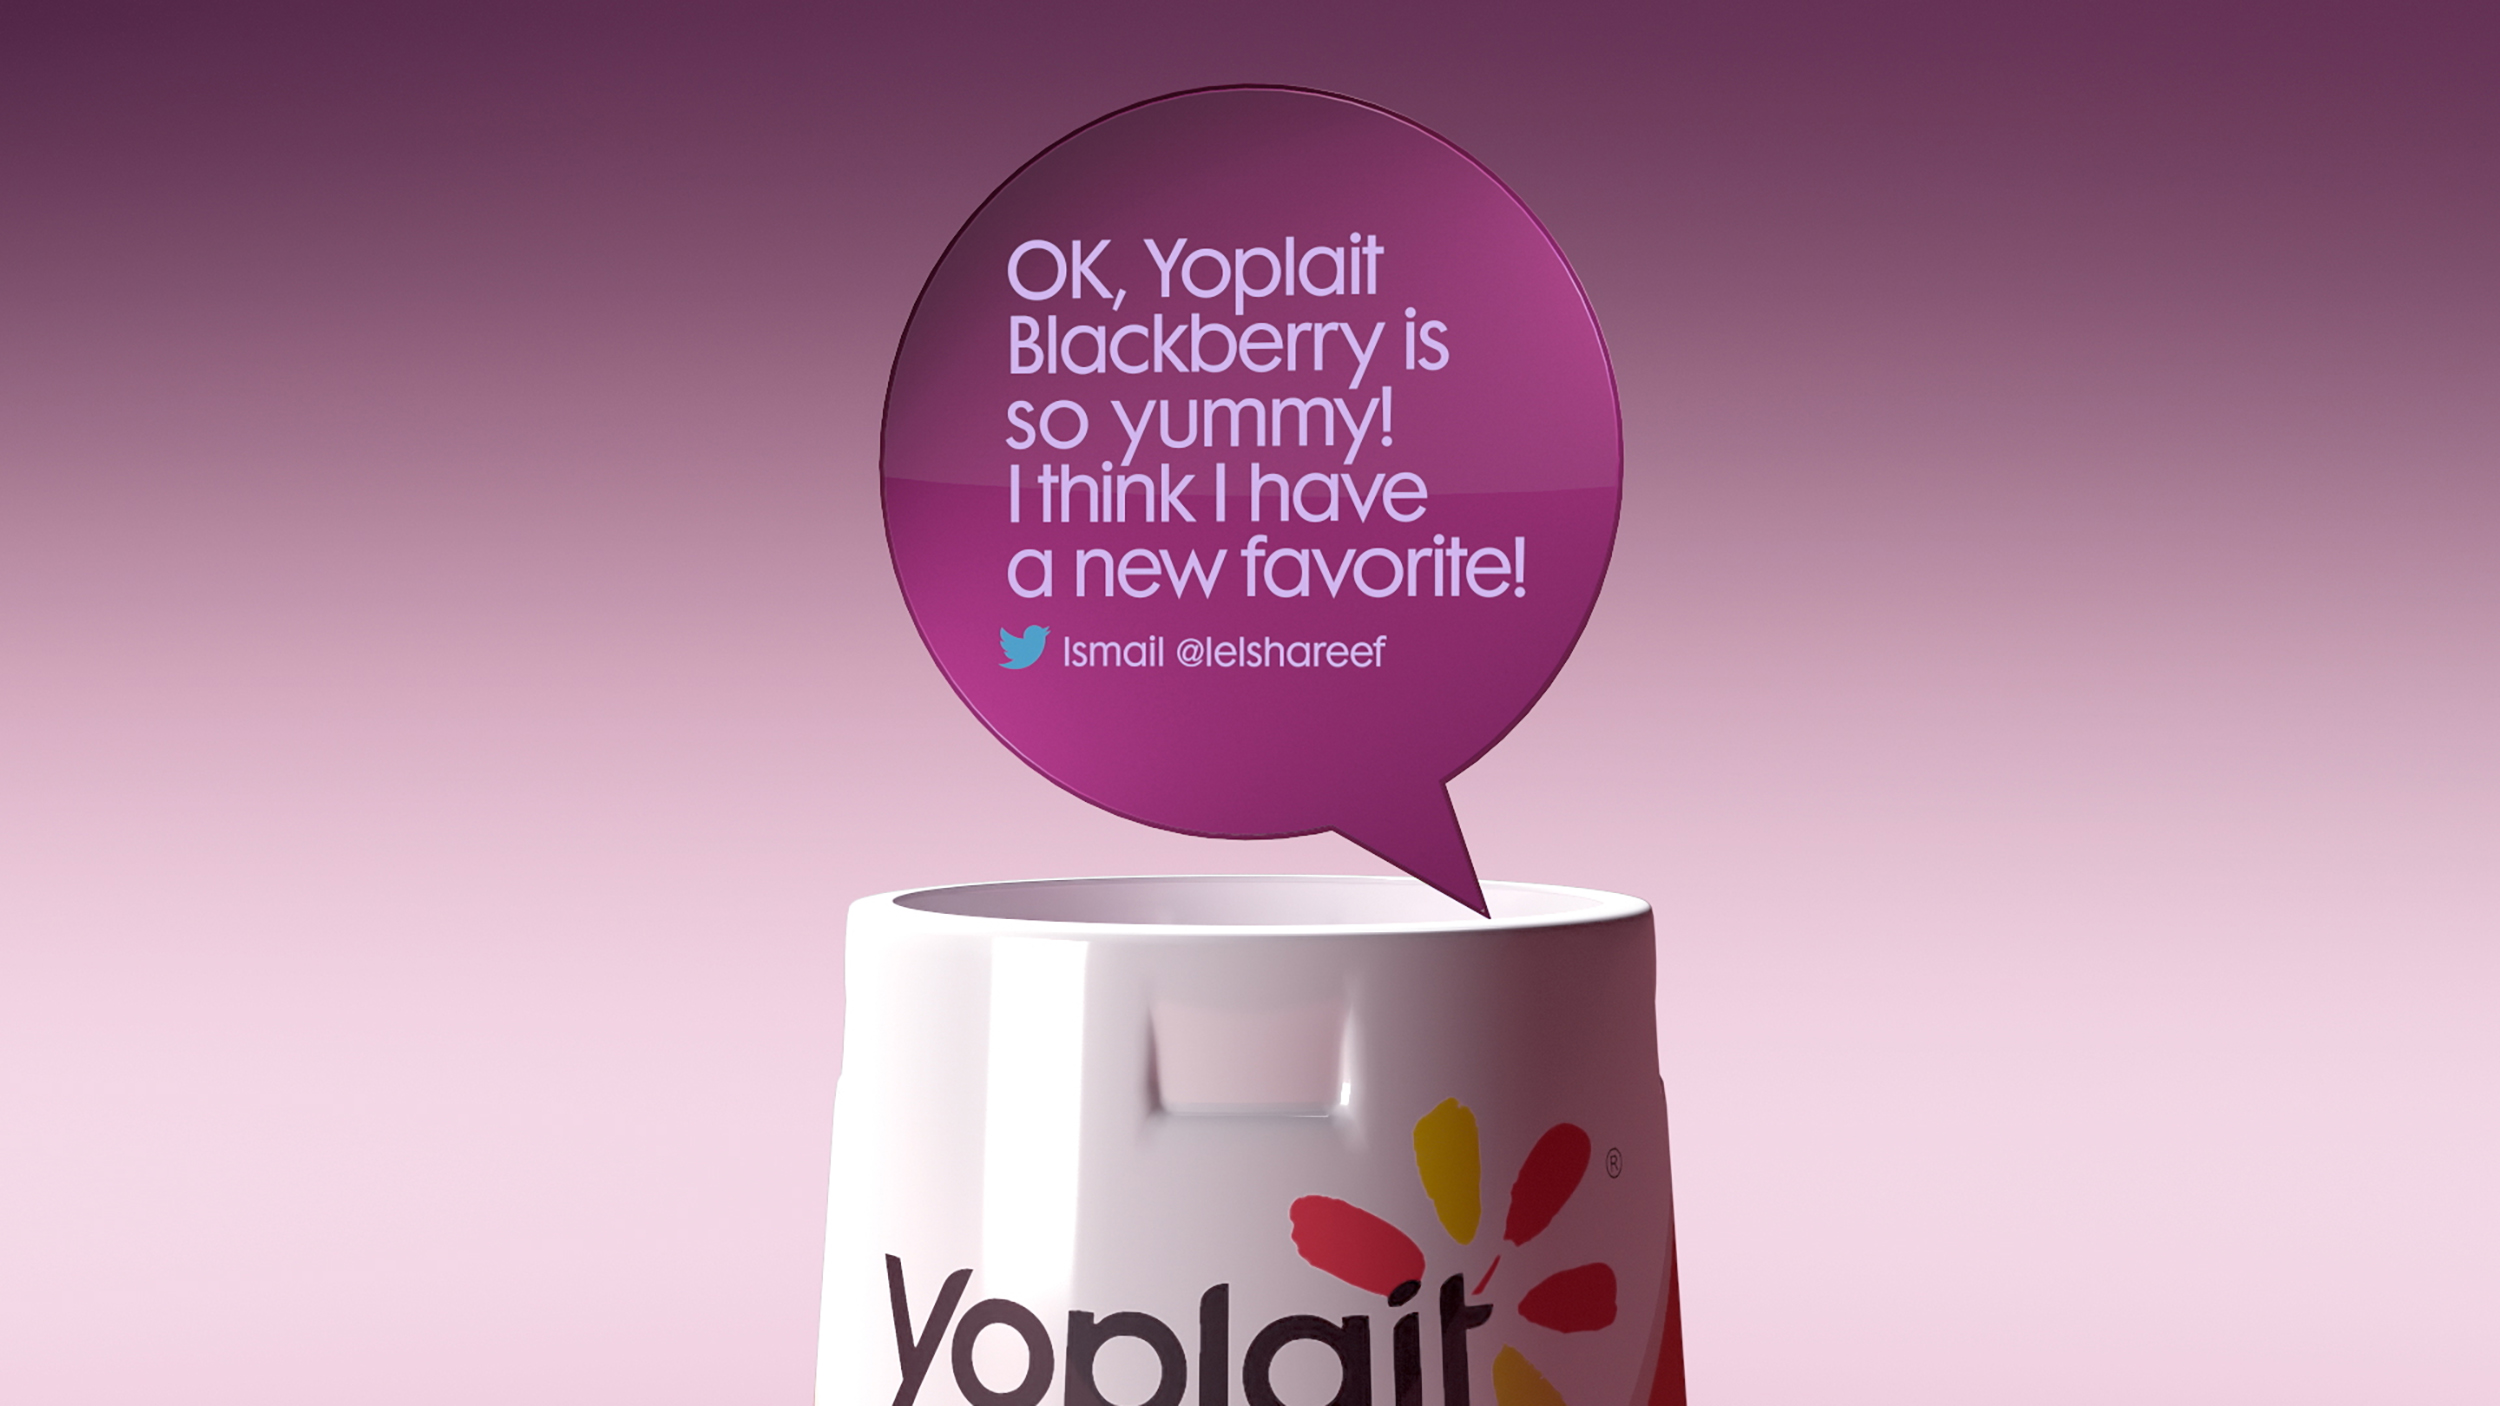 Yoplait_Blackberry_Unc8_0614_00106.jpg